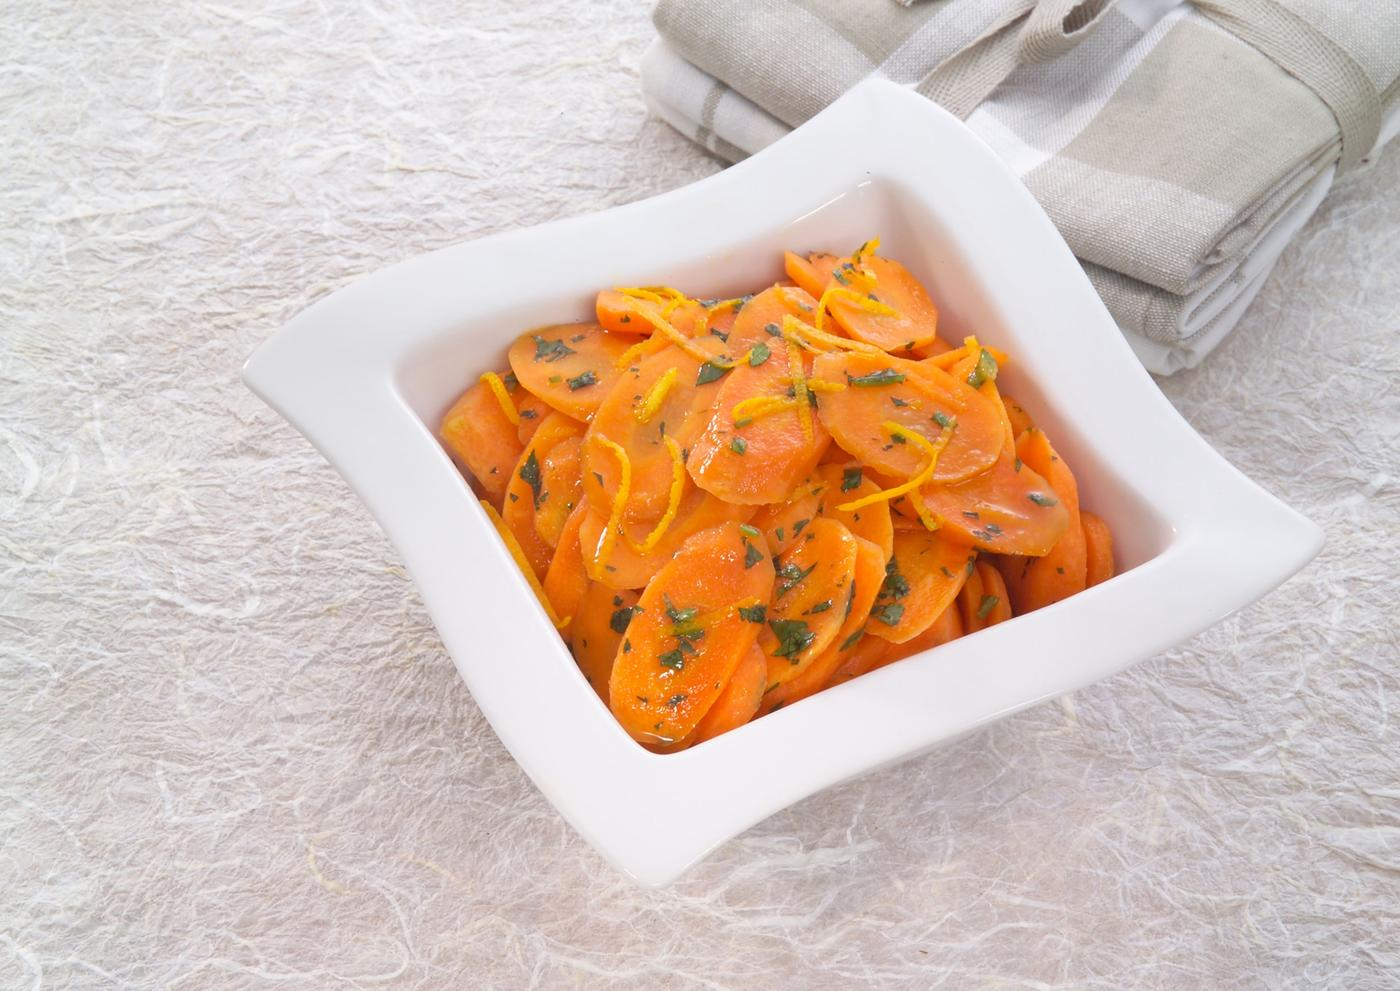 Carrots with lemon and coriander